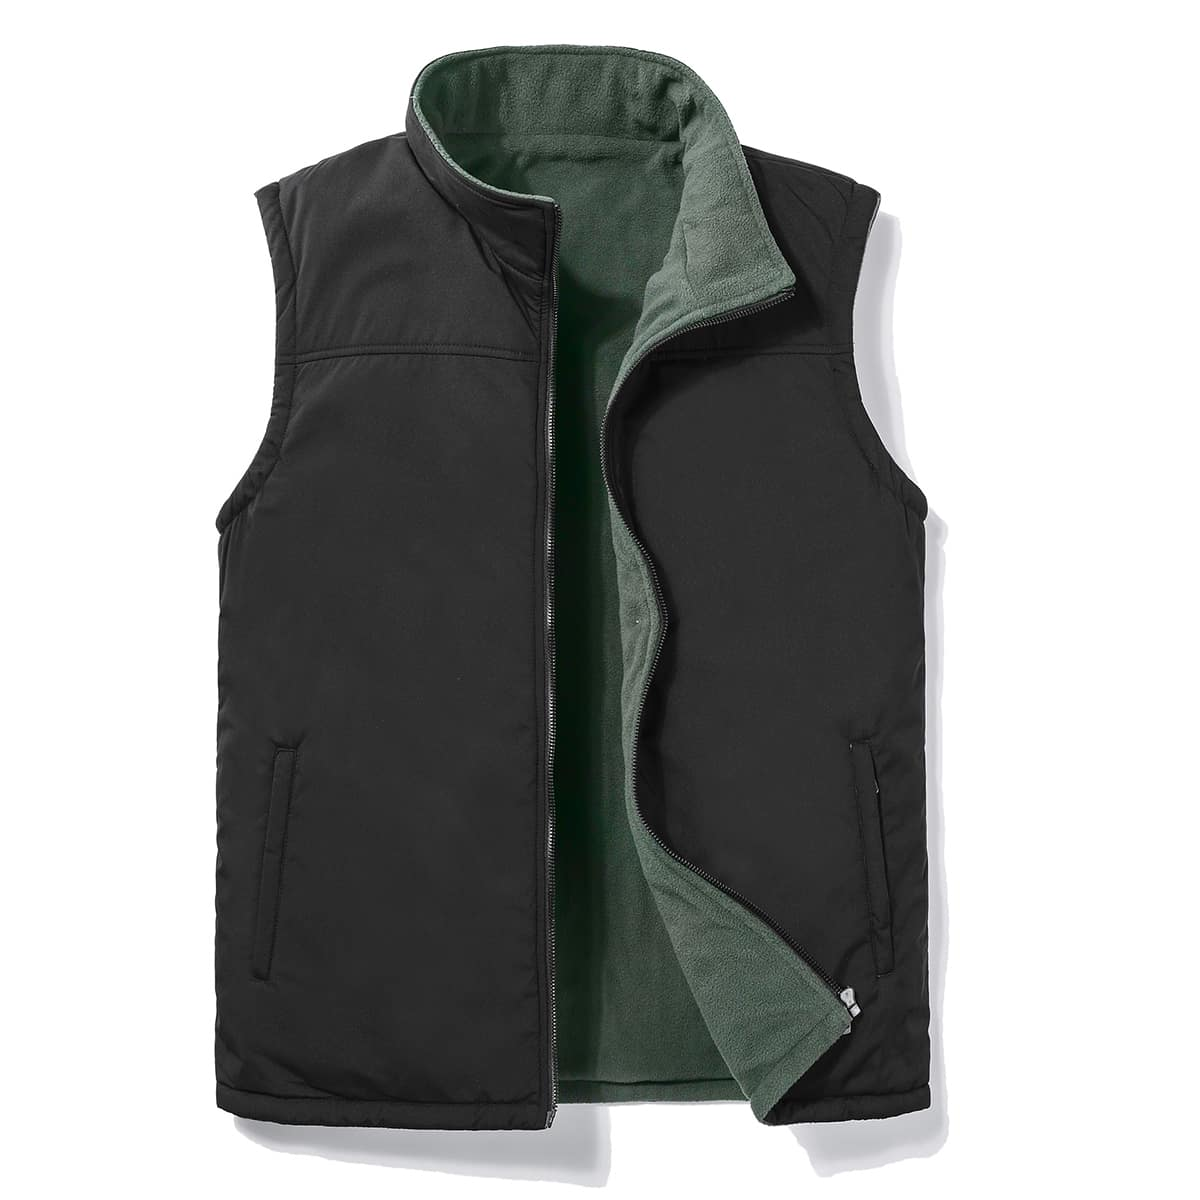 Men Zip Up Slant Pocket Thermal Vest Jacket